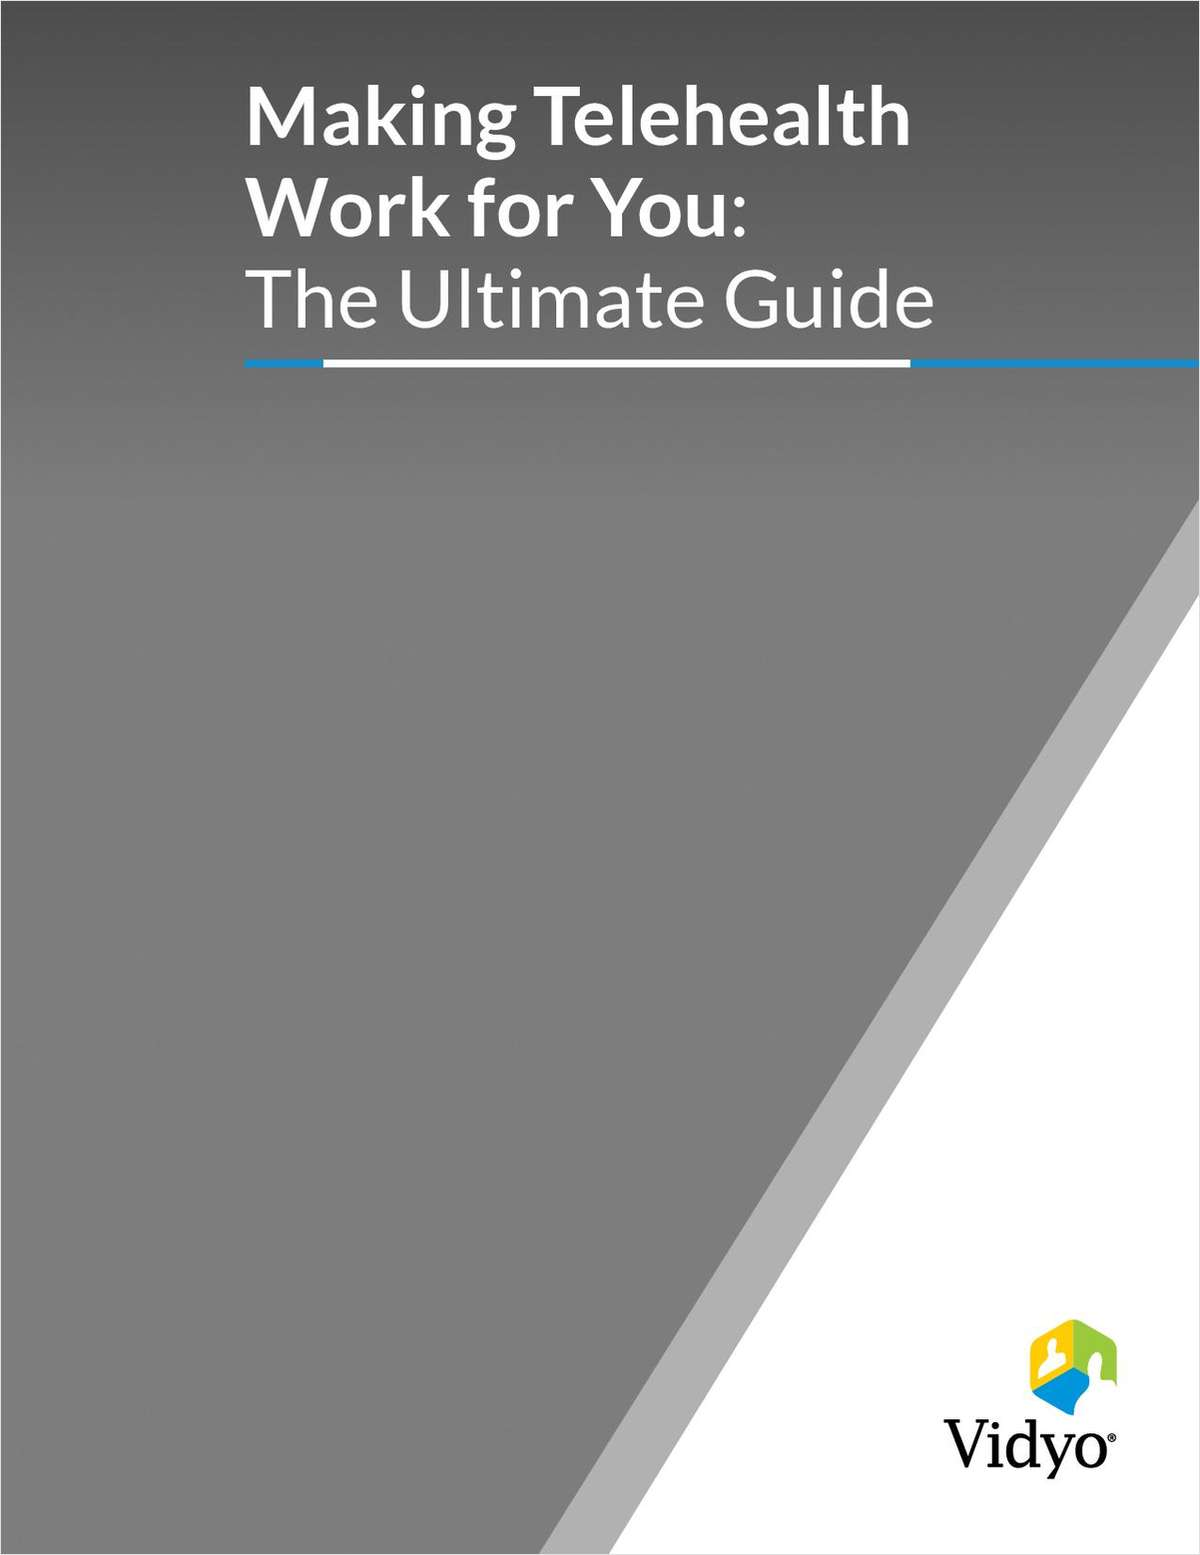 Making Telehealth Work for You: The Ultimate Guide